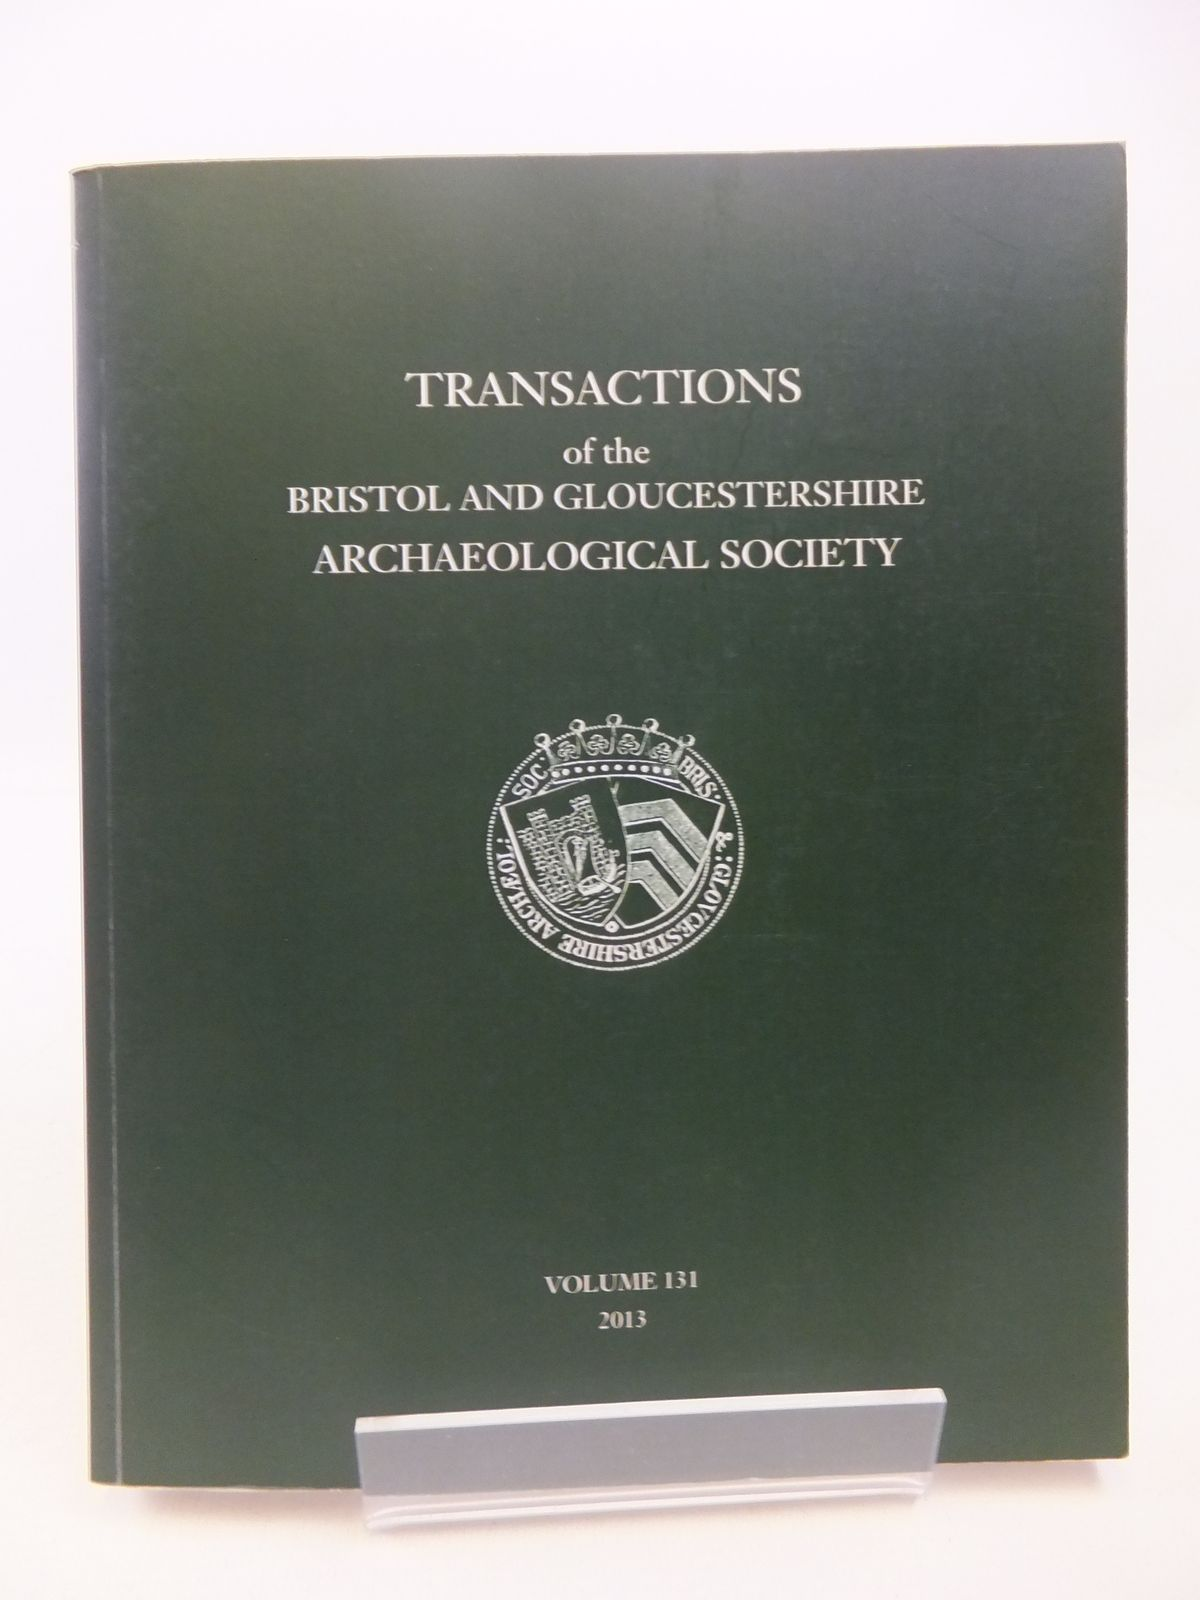 Photo of TRANSACTIONS OF THE BRISTOL AND GLOUCESTERSHIRE ARCHAEOLOGICAL SOCIETY FOR 2013 VOLUME 131